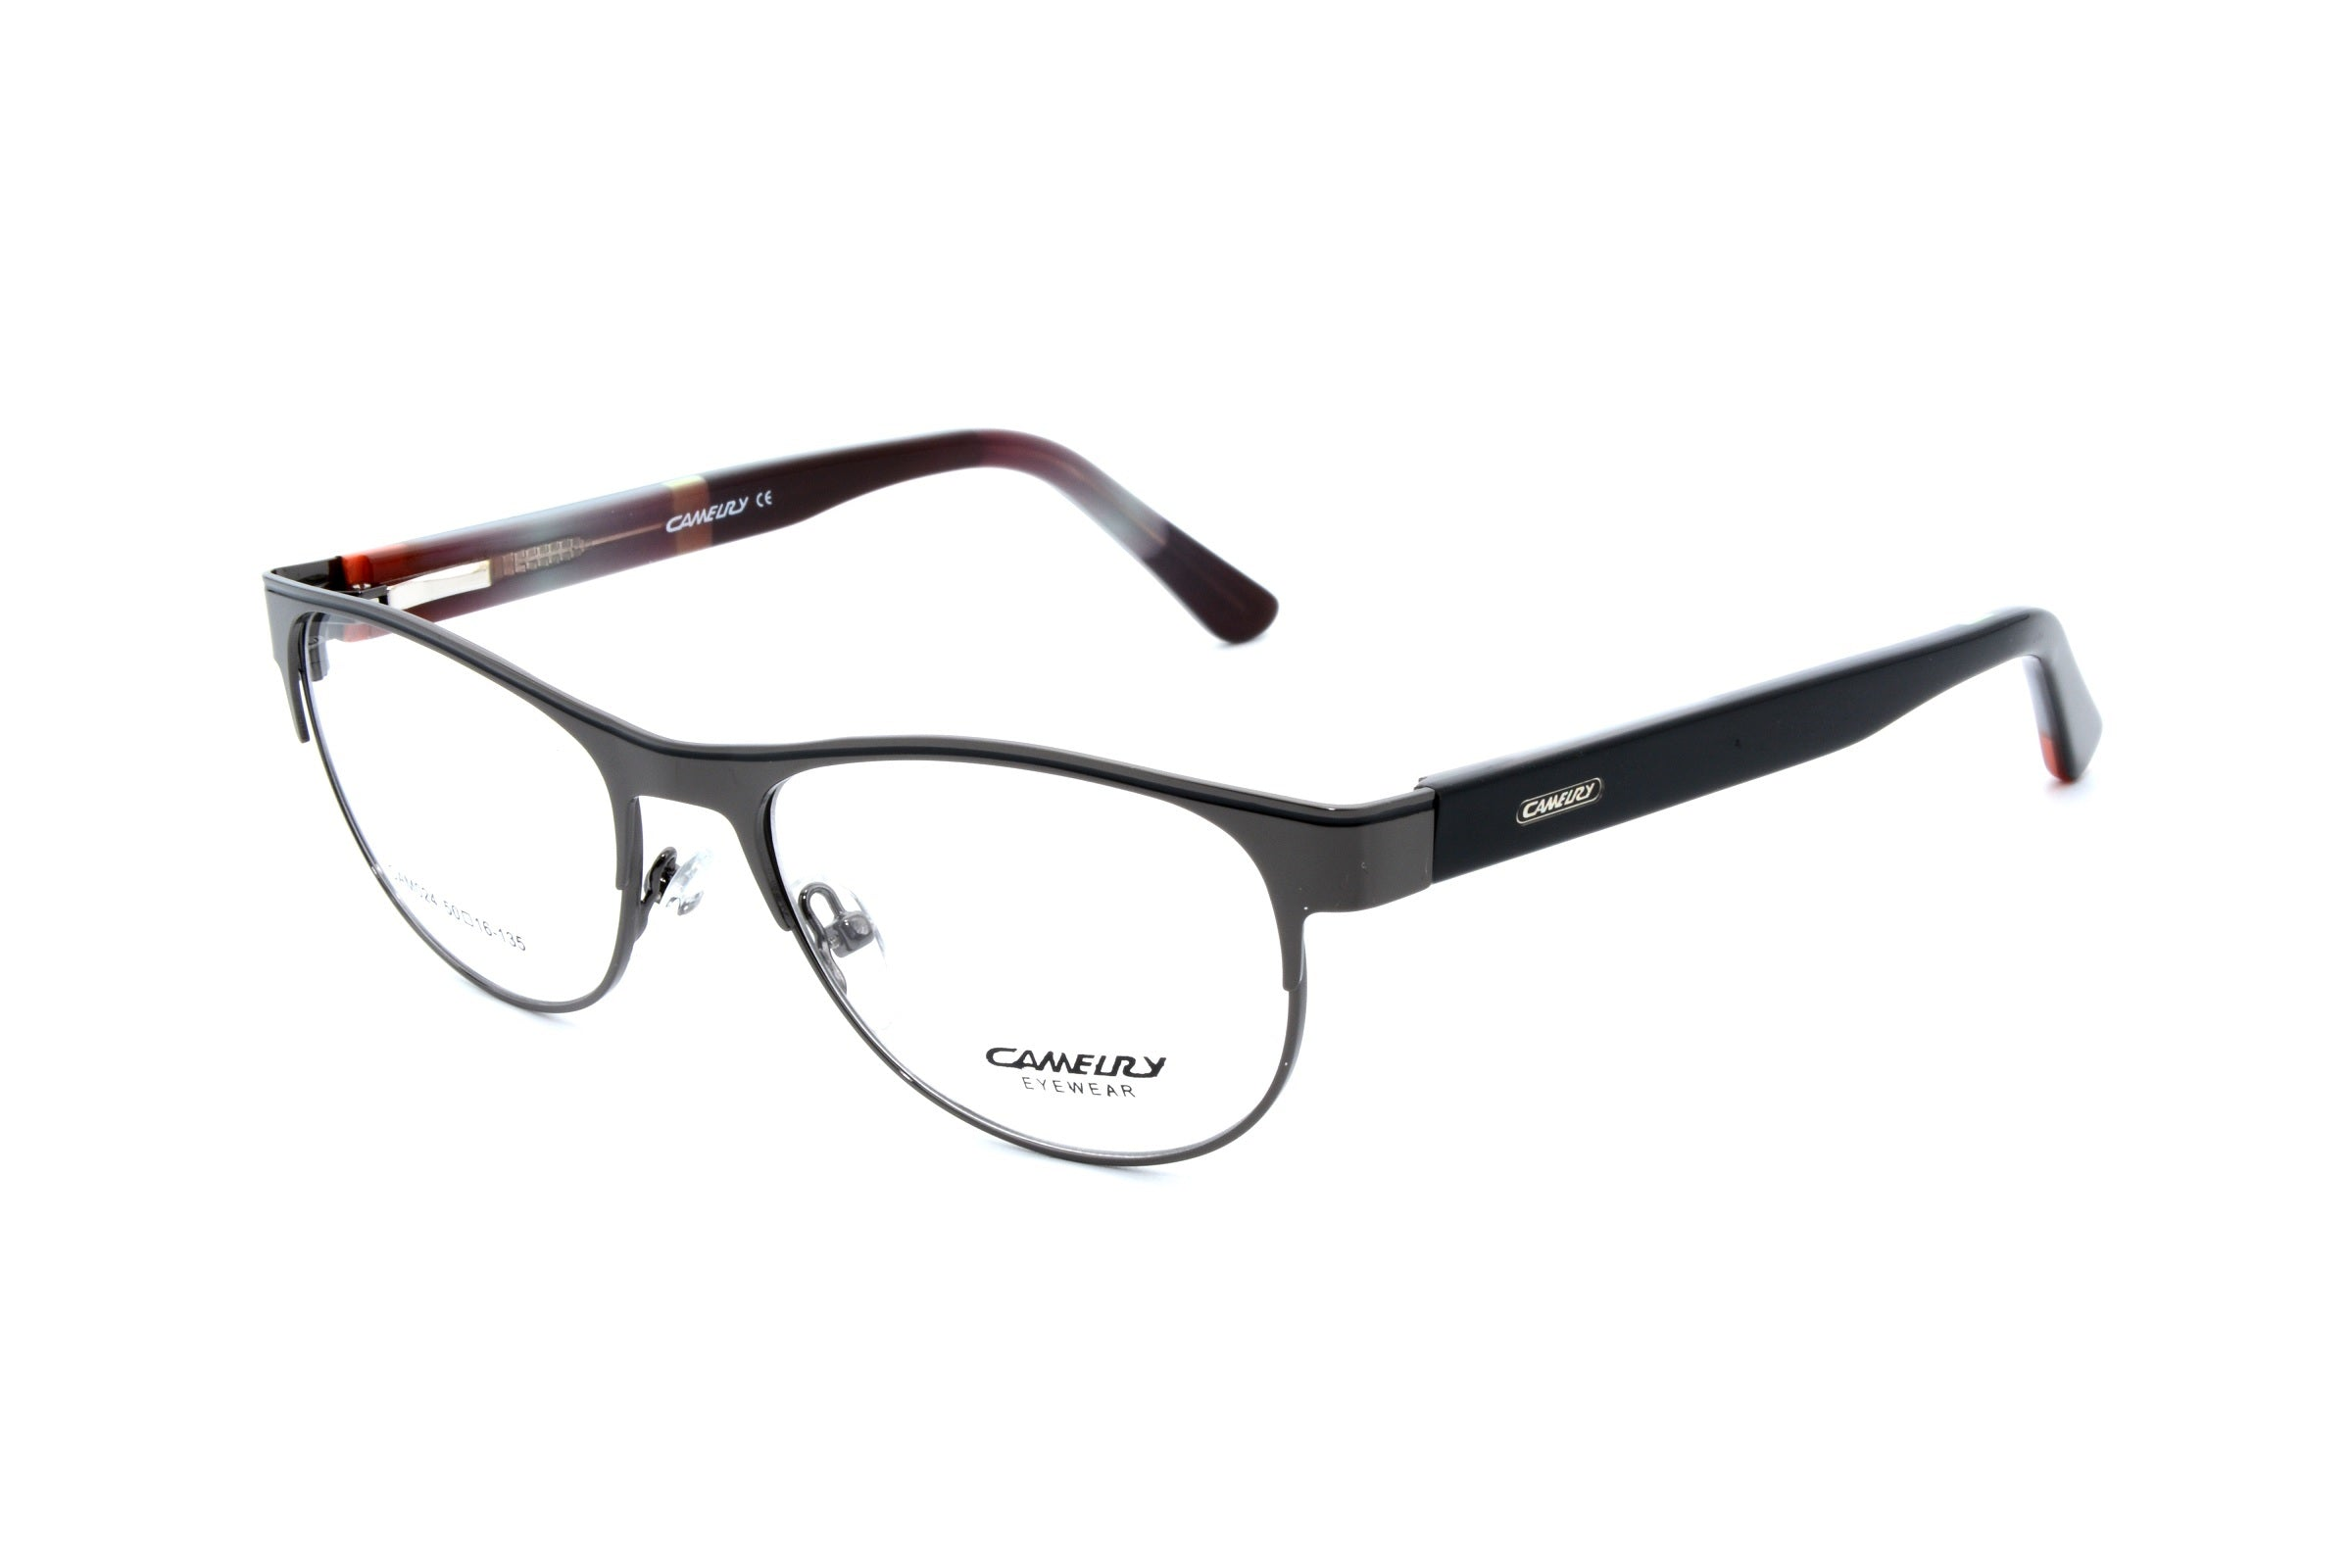 Camerly eyewear Cam024, C2 - Optics Trading